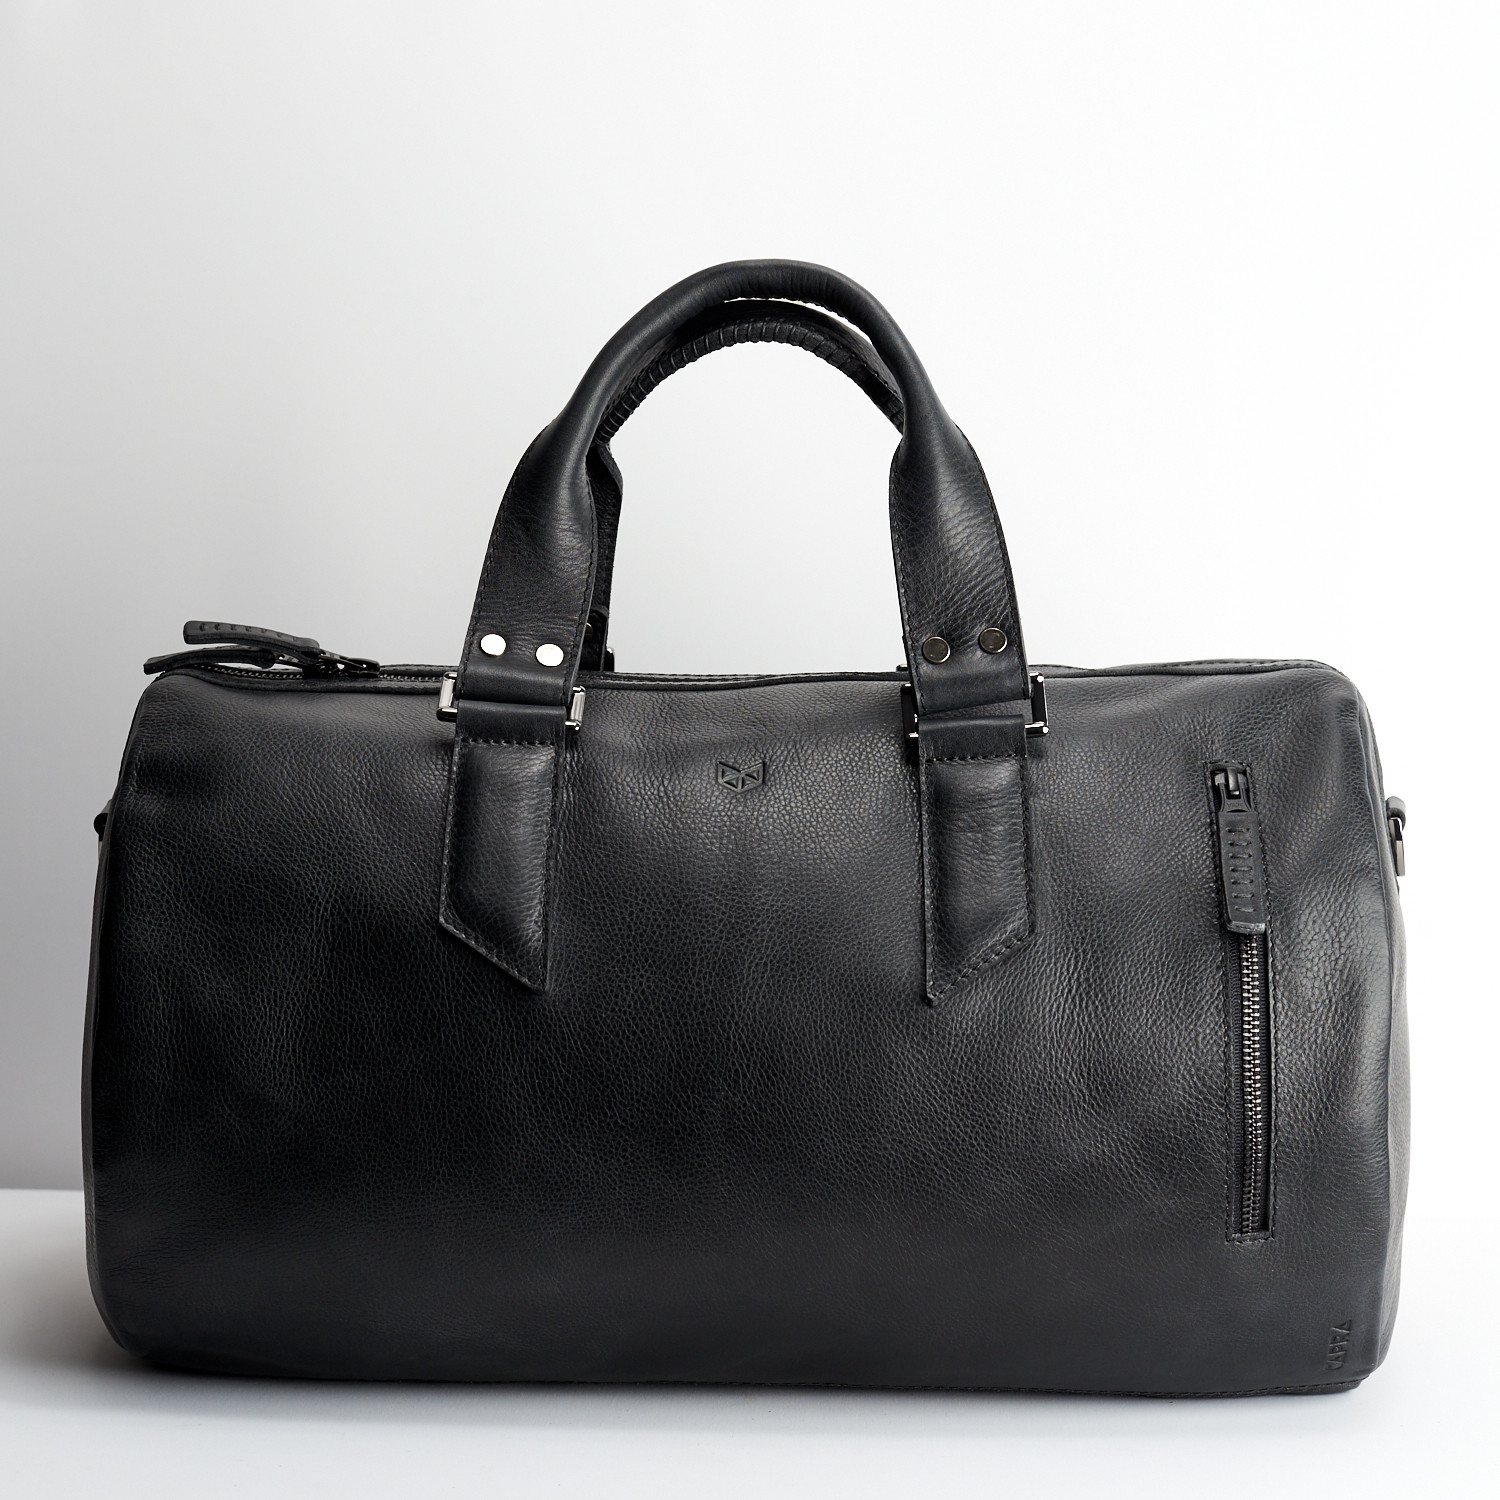 184852355b0a52 Substantial Duffle Bag // Black (25 Liters) - Capra Leather - Touch ...